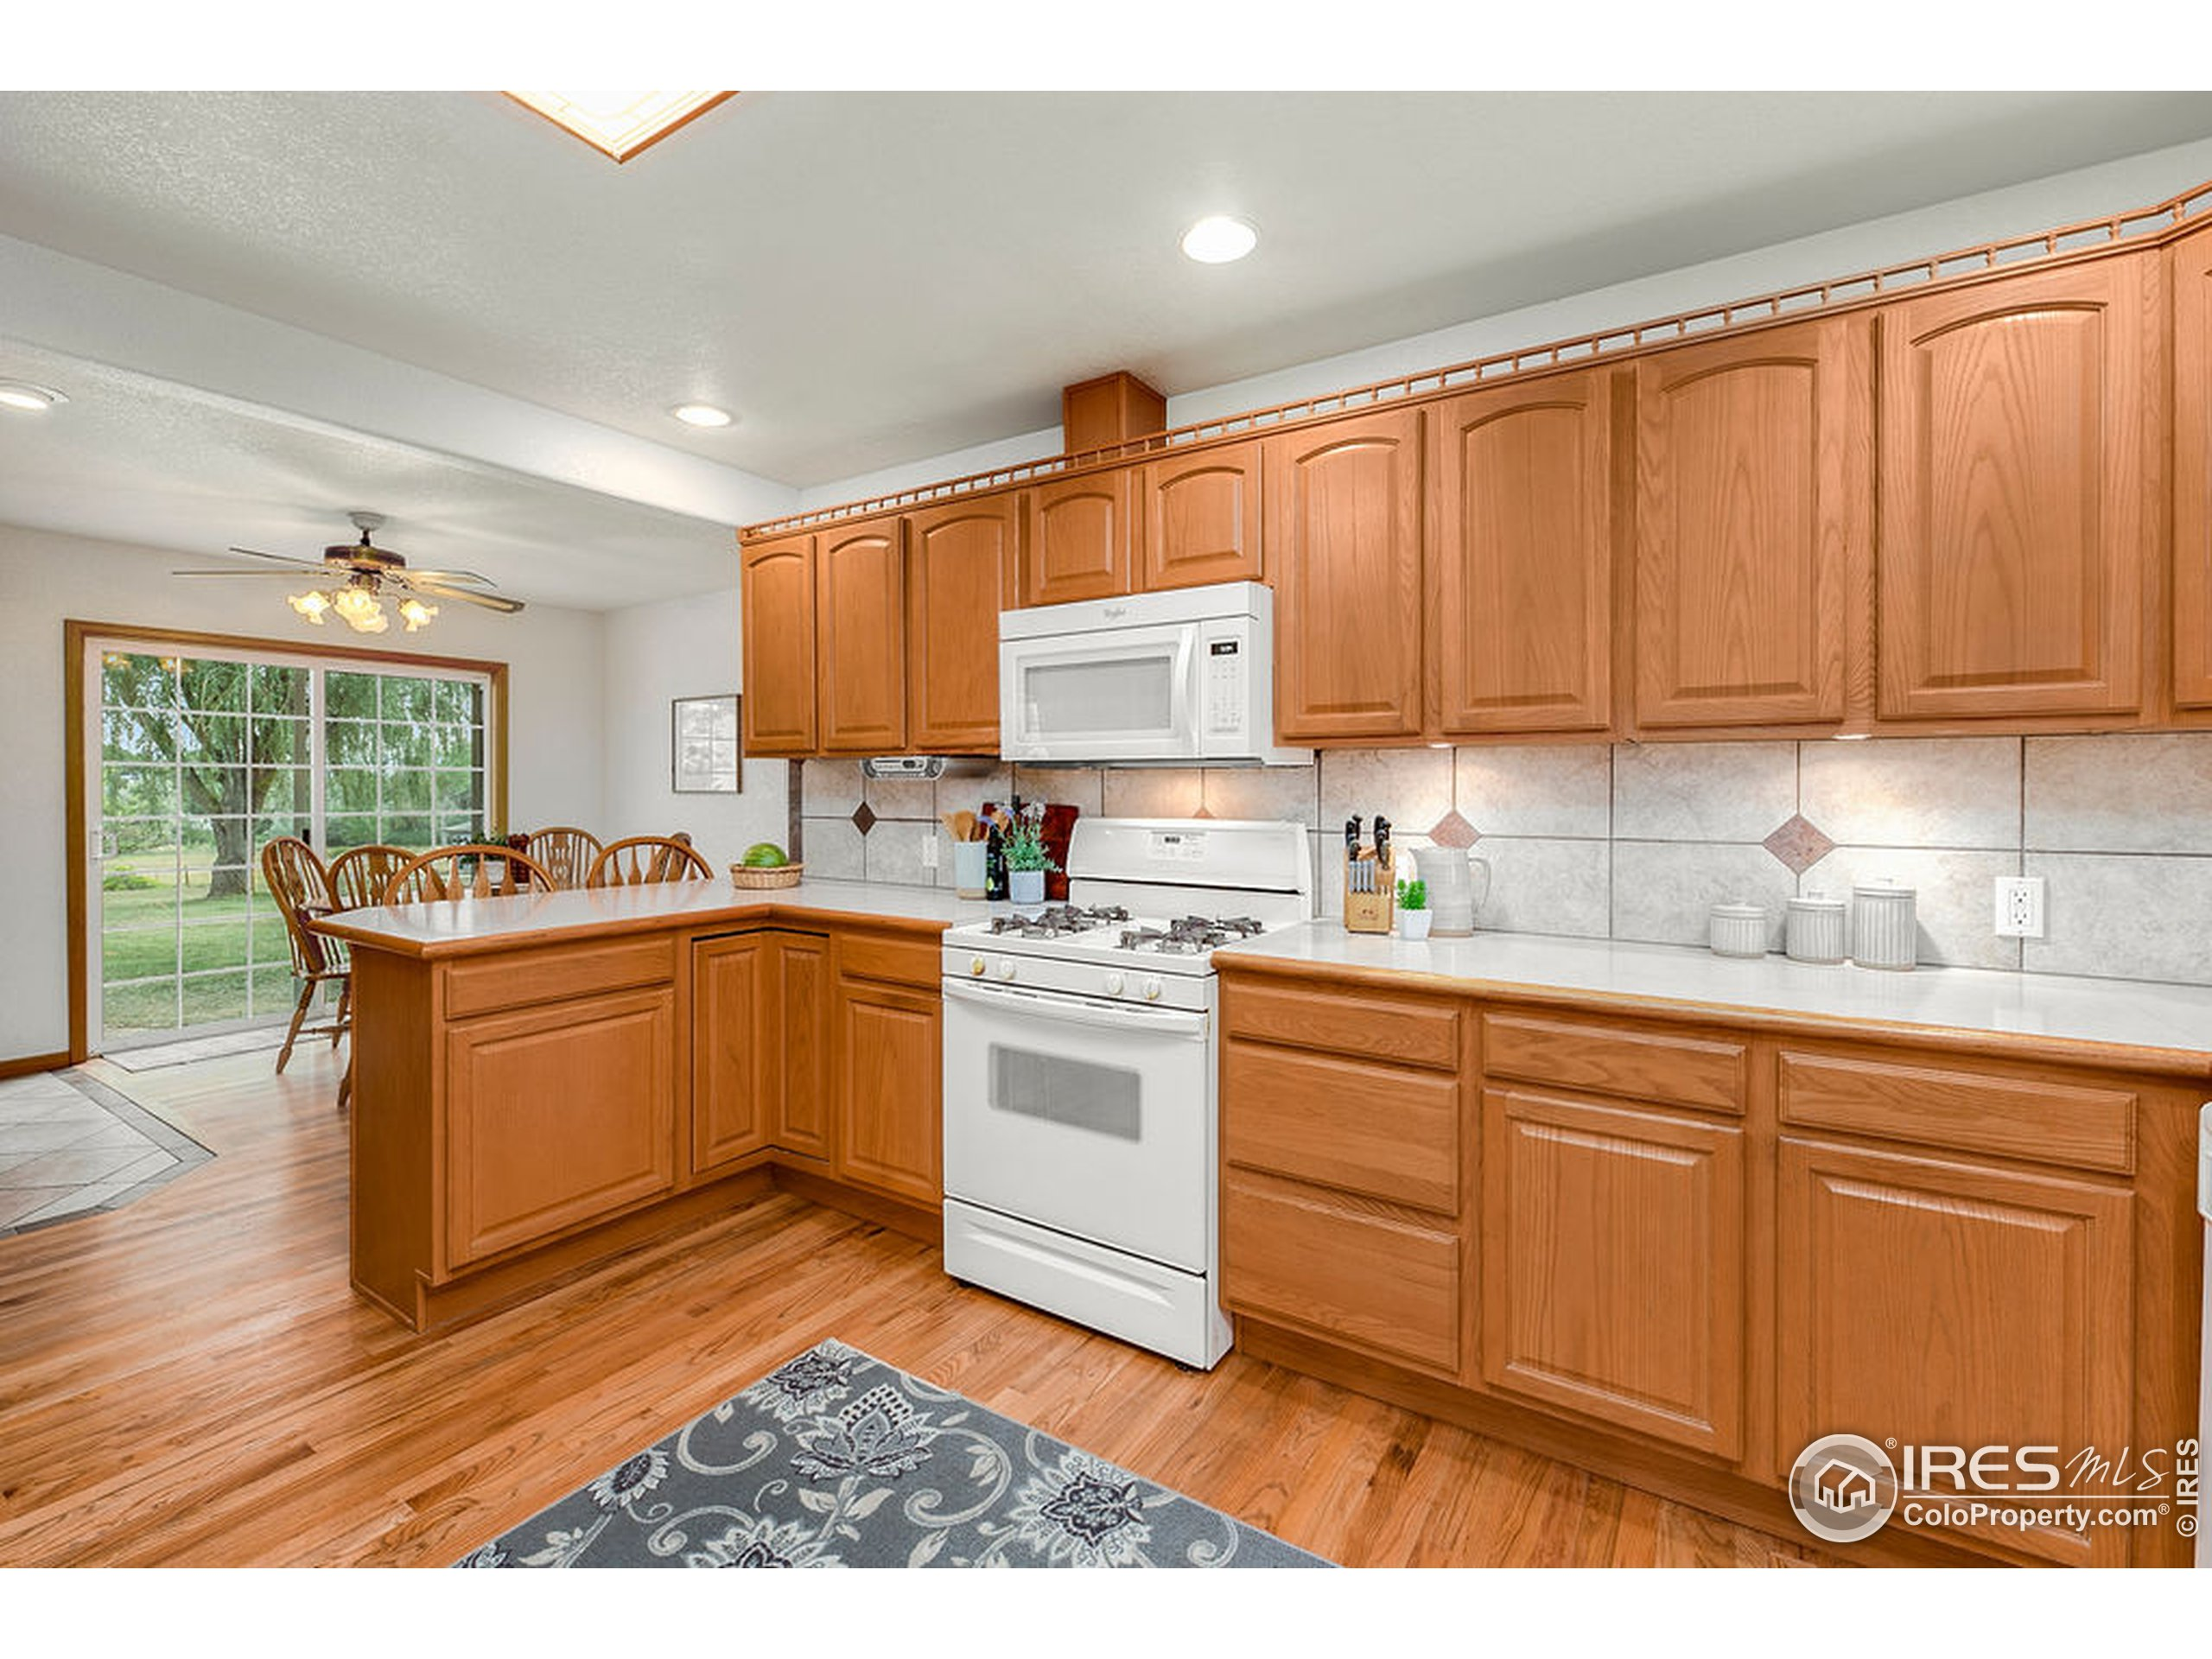 Wood Cabinetry & Full Height Kitchen Backsplash with Under Cabinet Lighting